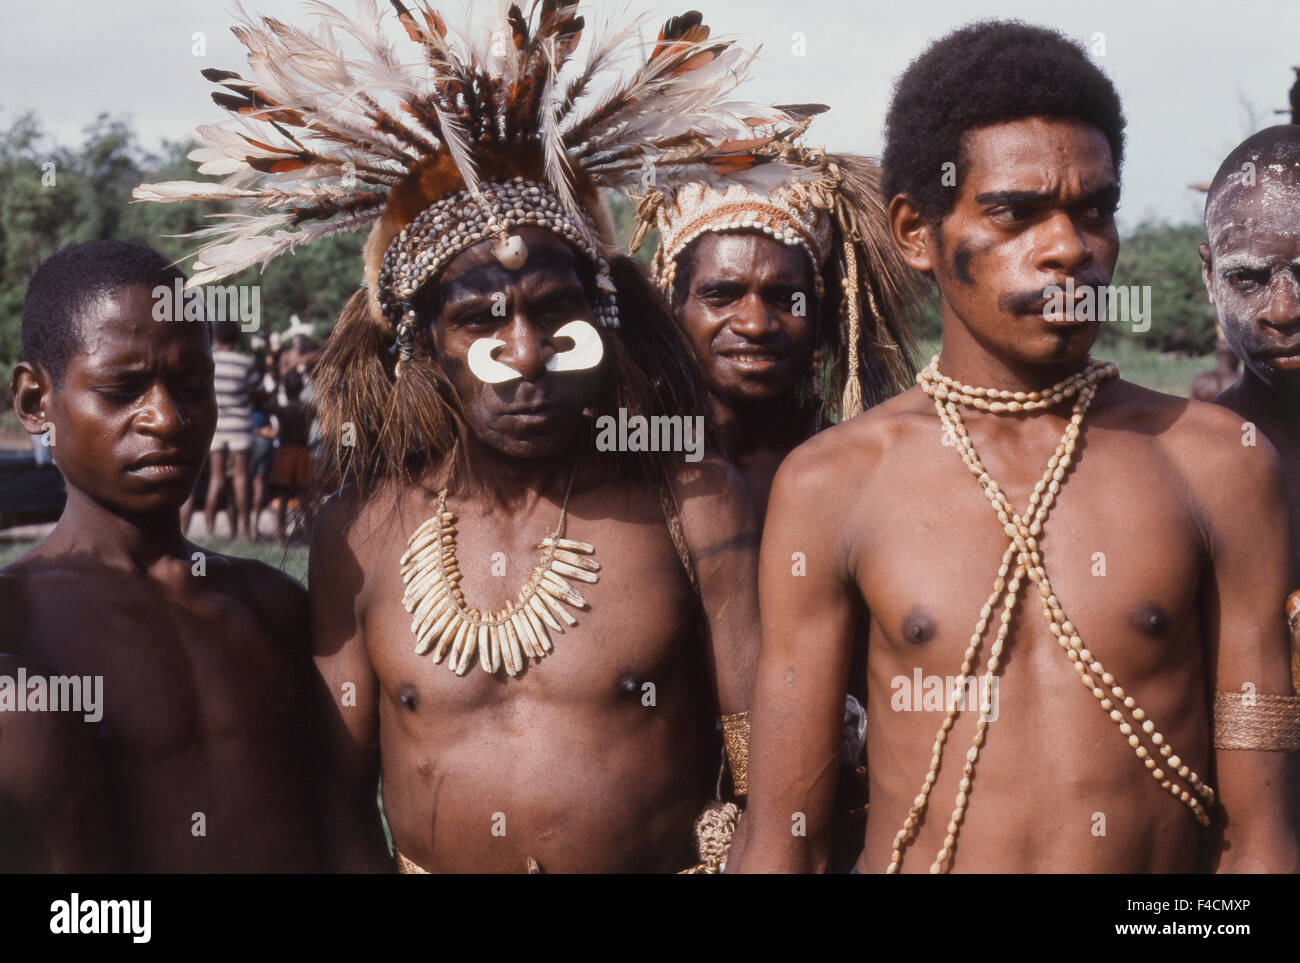 Indonesia, Irian Jaya, Native people standing. (Large format sizes available) - Stock Image